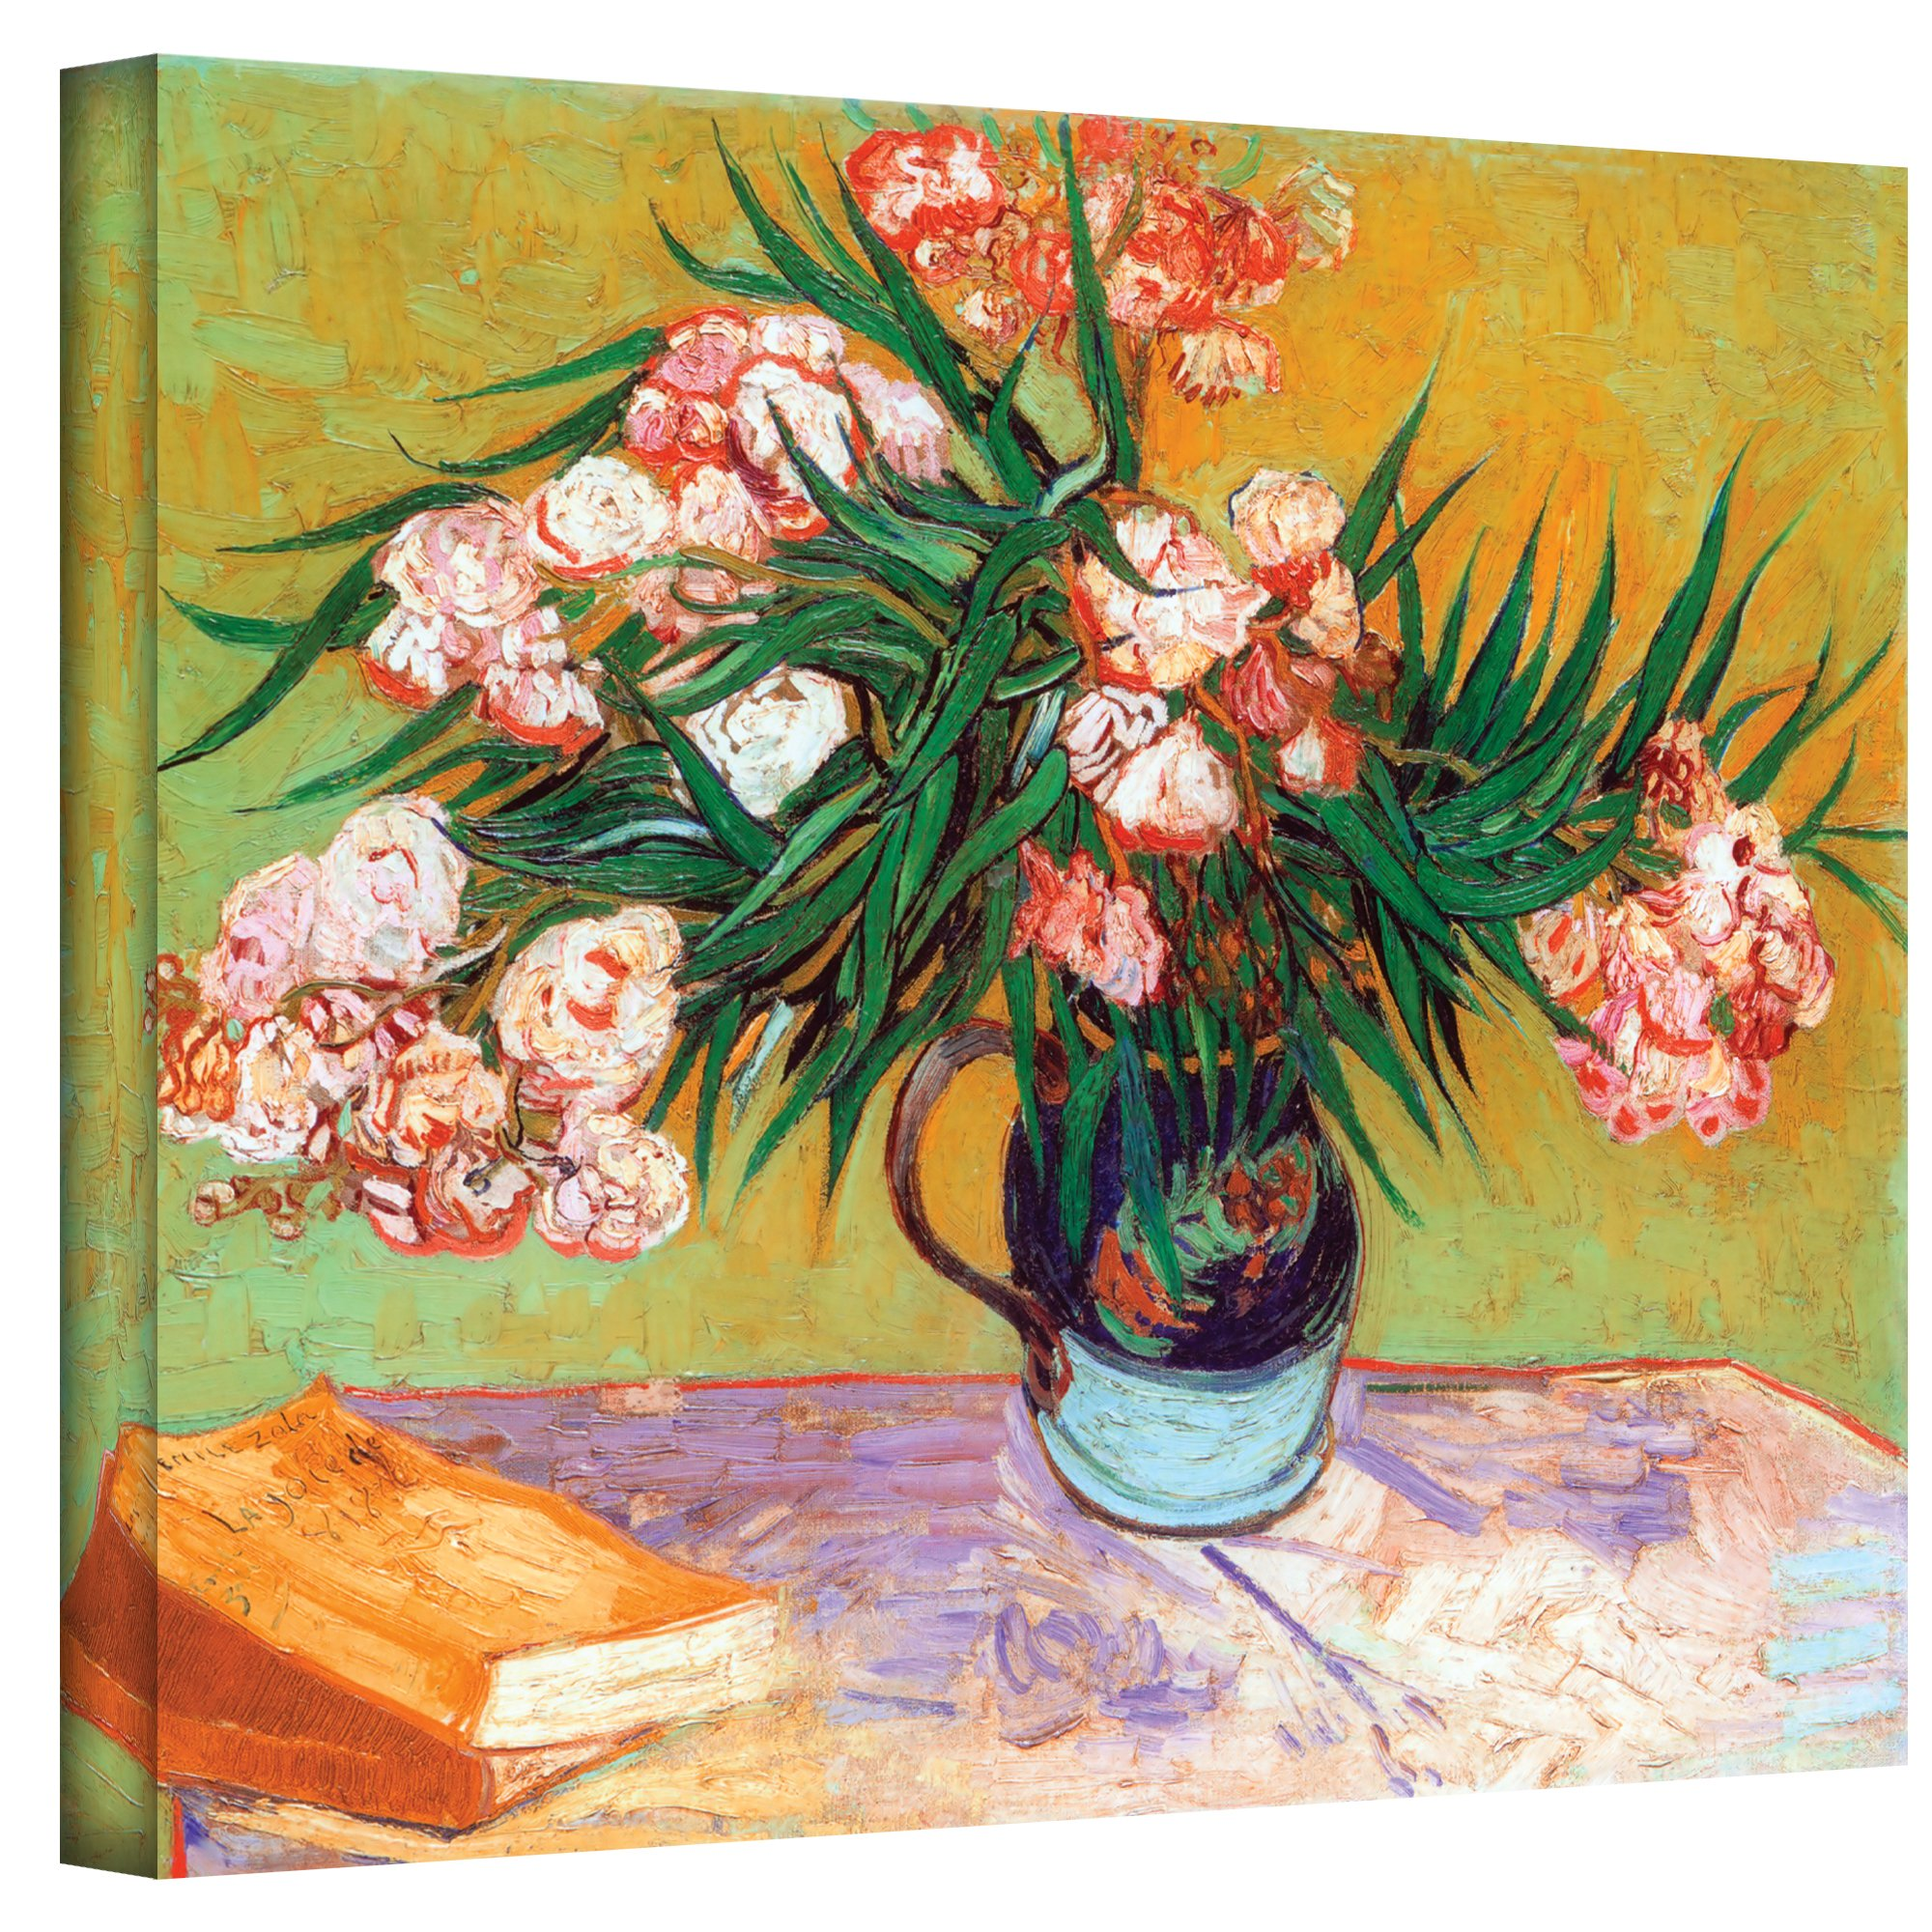 ArtWall Wild Roses by Vincent Van Gogh Gallery Wrapped Canvas, 36 by 48-Inch by ArtWall